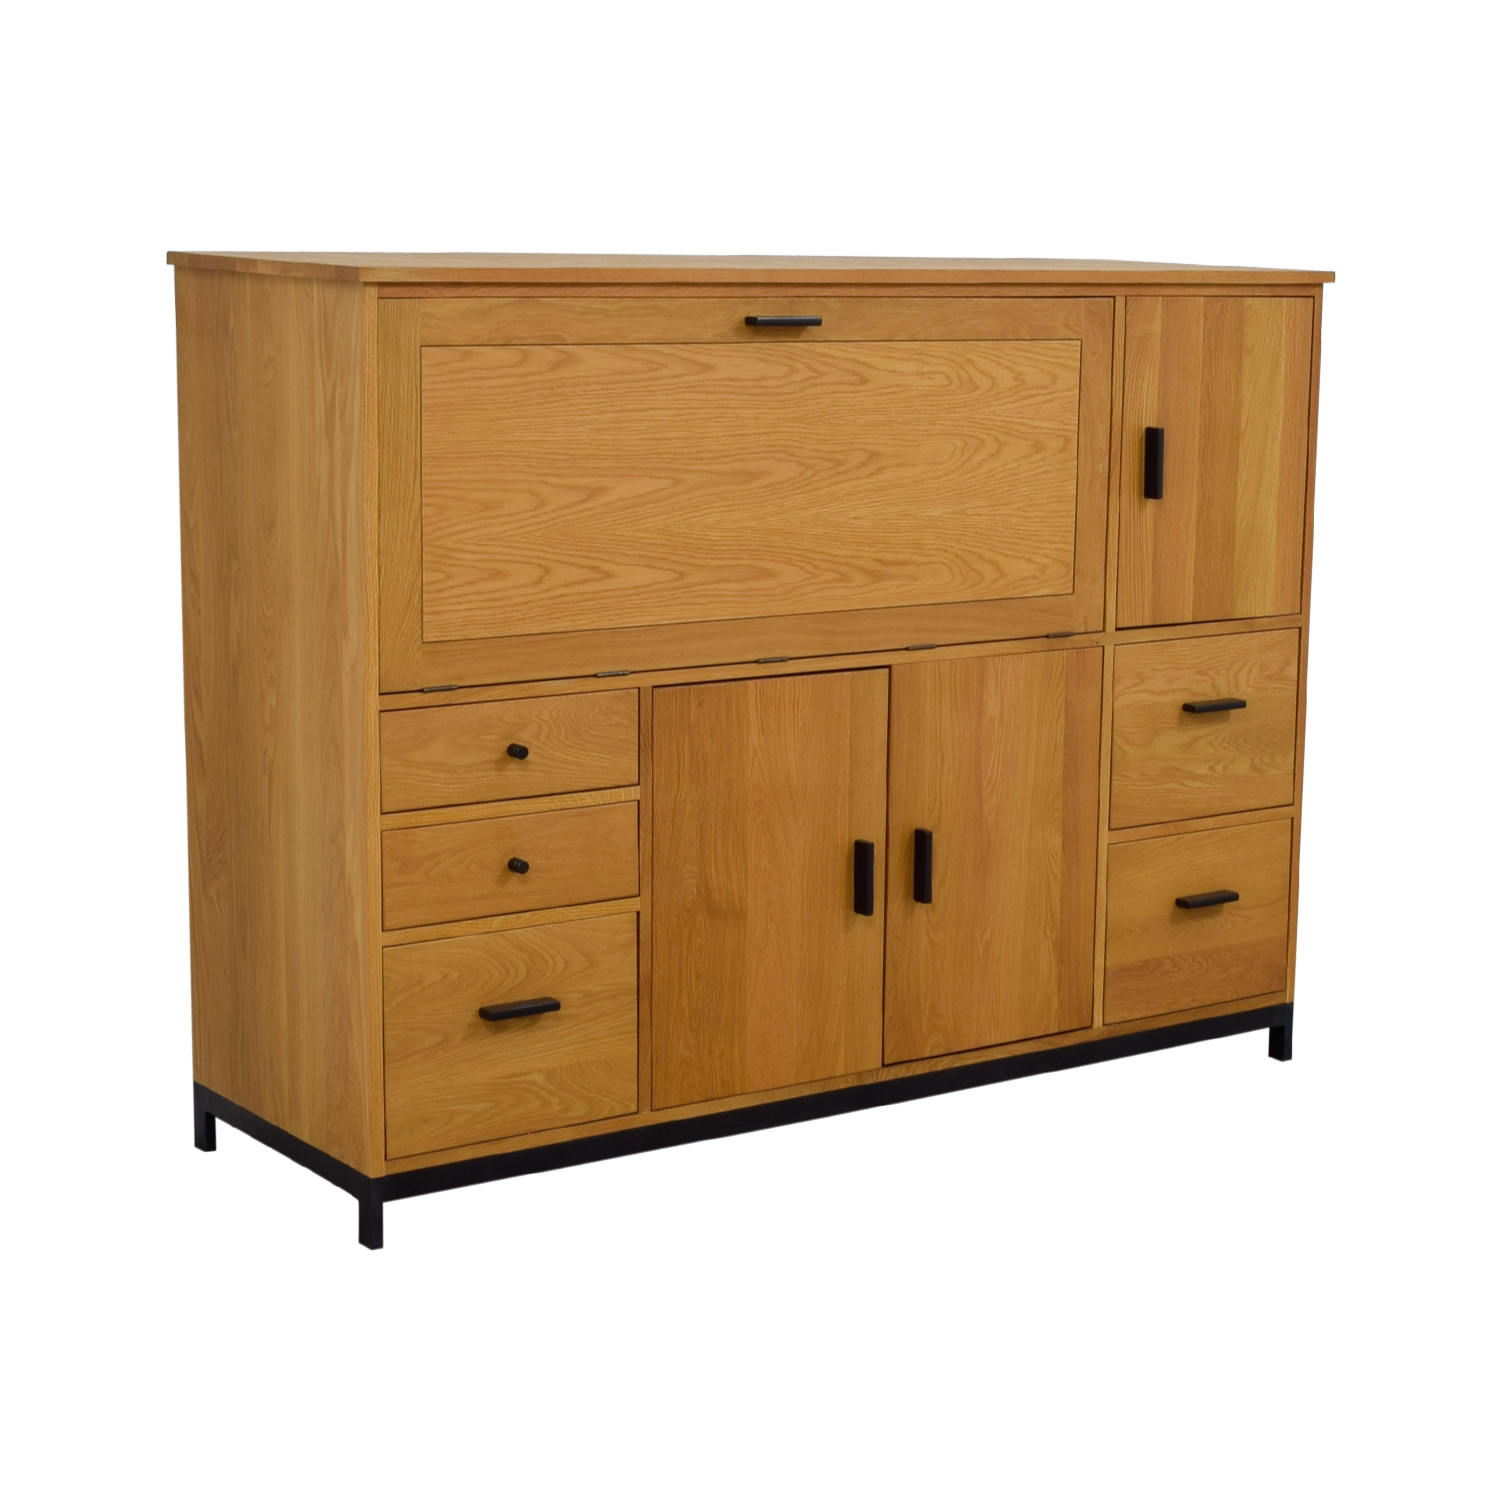 60% OFF - Room & Board Room & Board Maple Office Armoire ...